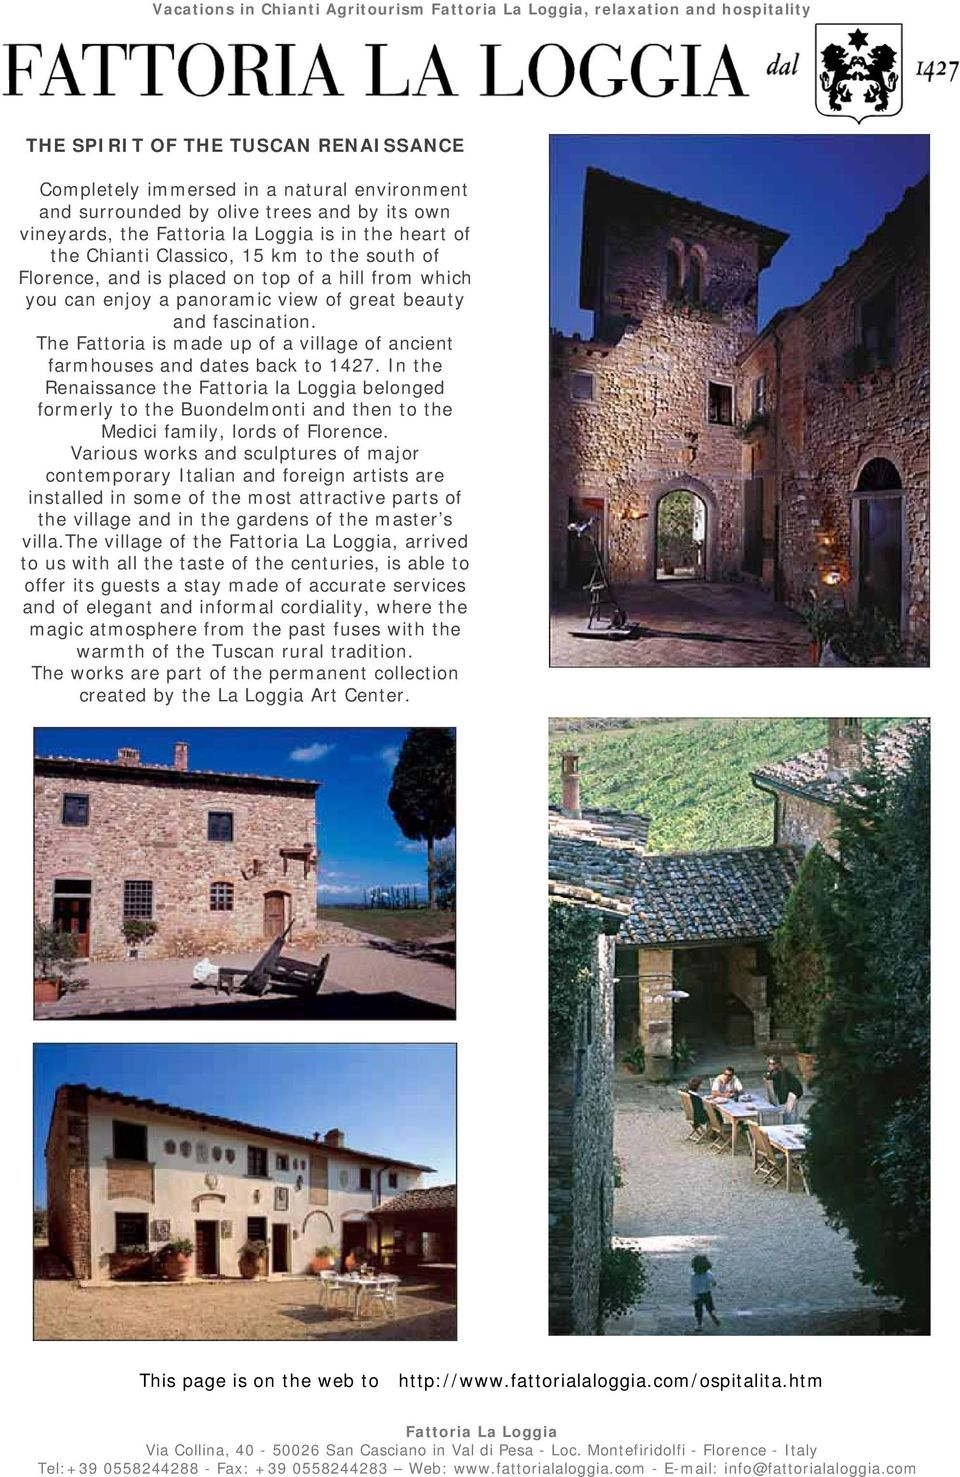 fascination. The Fattoria is made up of a village of ancient farmhouses and dates back to 1427.